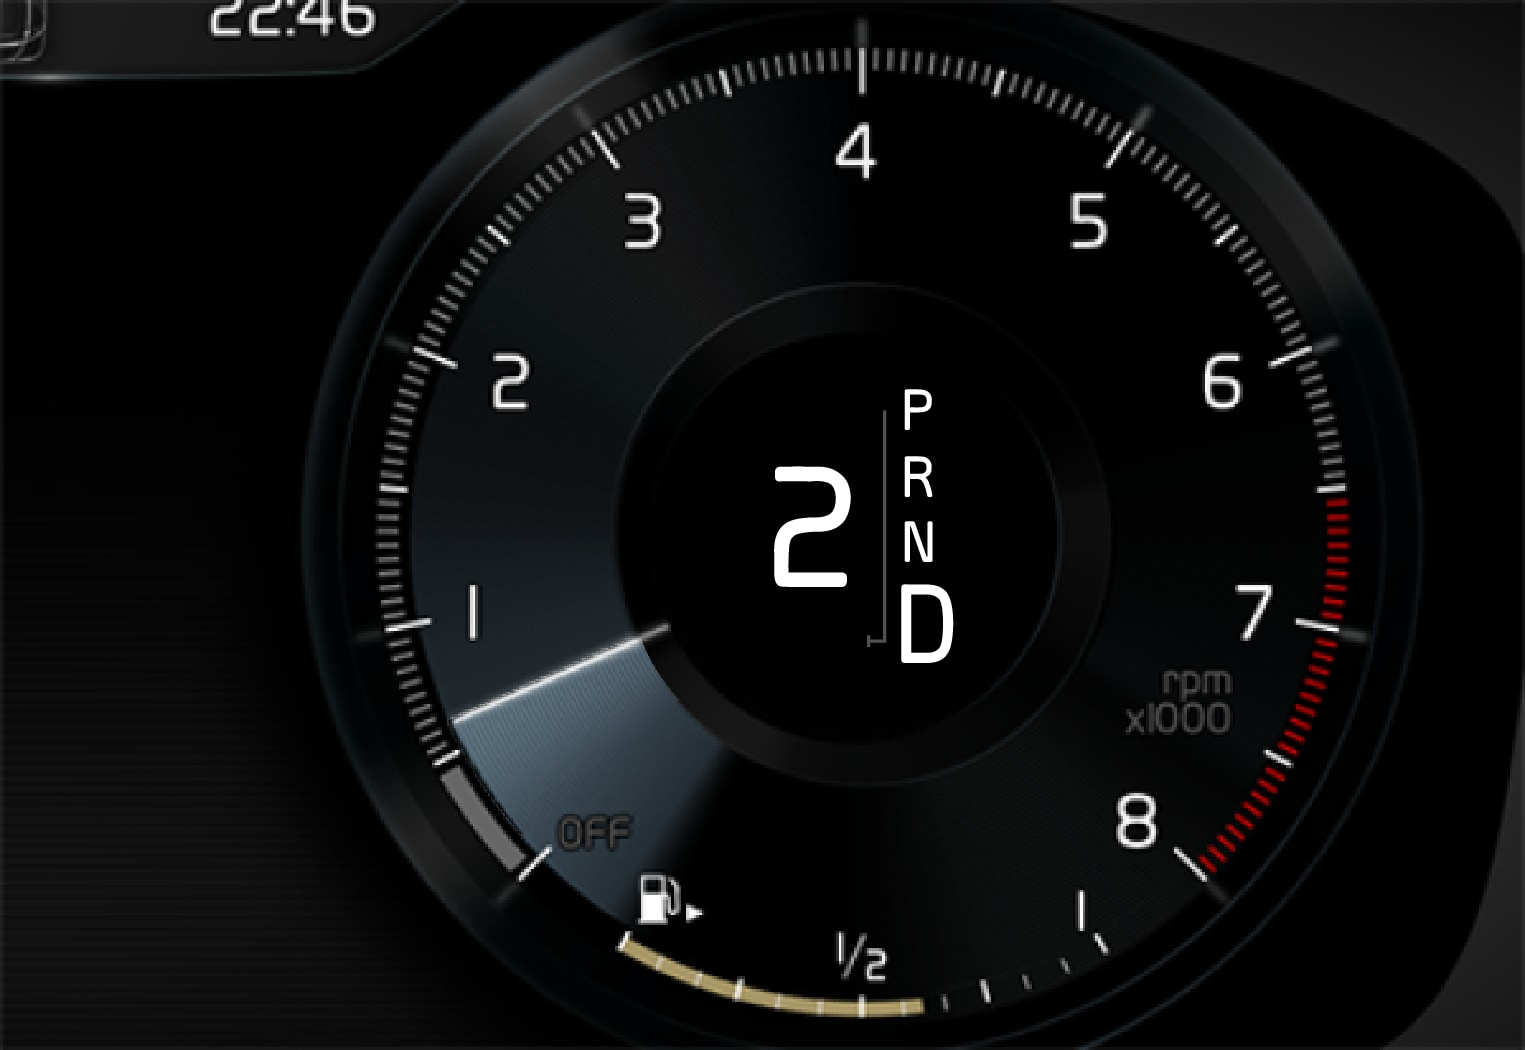 P5-1917-Old-Gear shift mode D in driver display